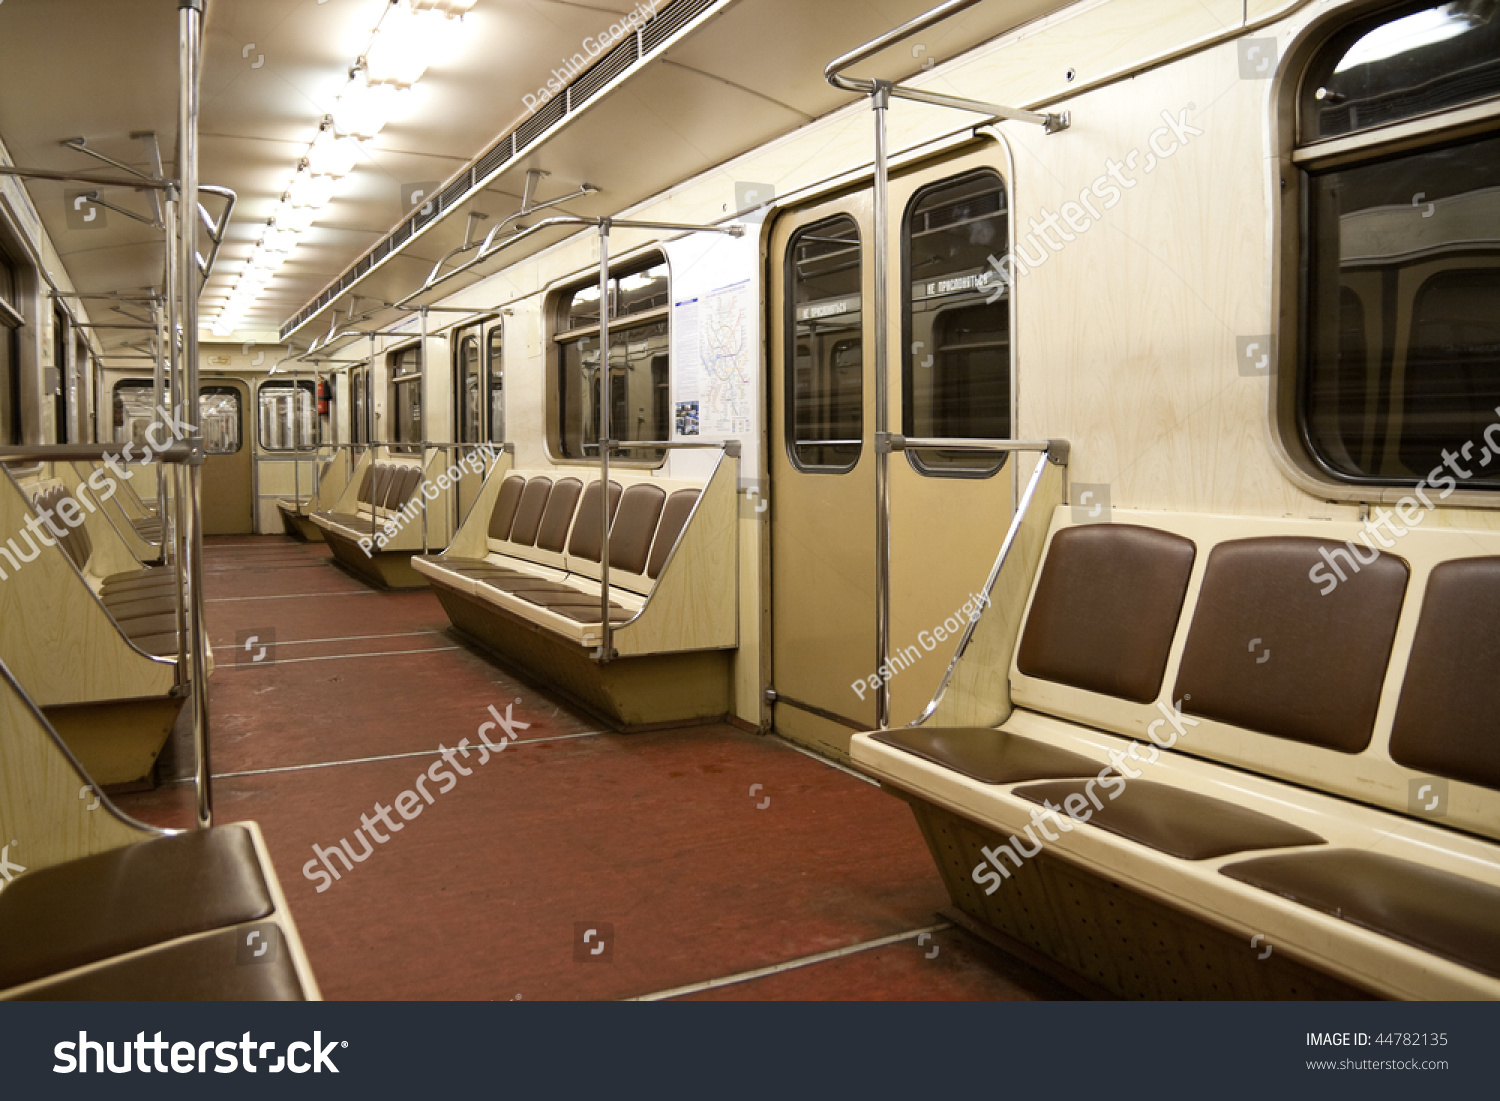 inside empty subway car train moscow stock photo 44782135 shutterstock. Black Bedroom Furniture Sets. Home Design Ideas